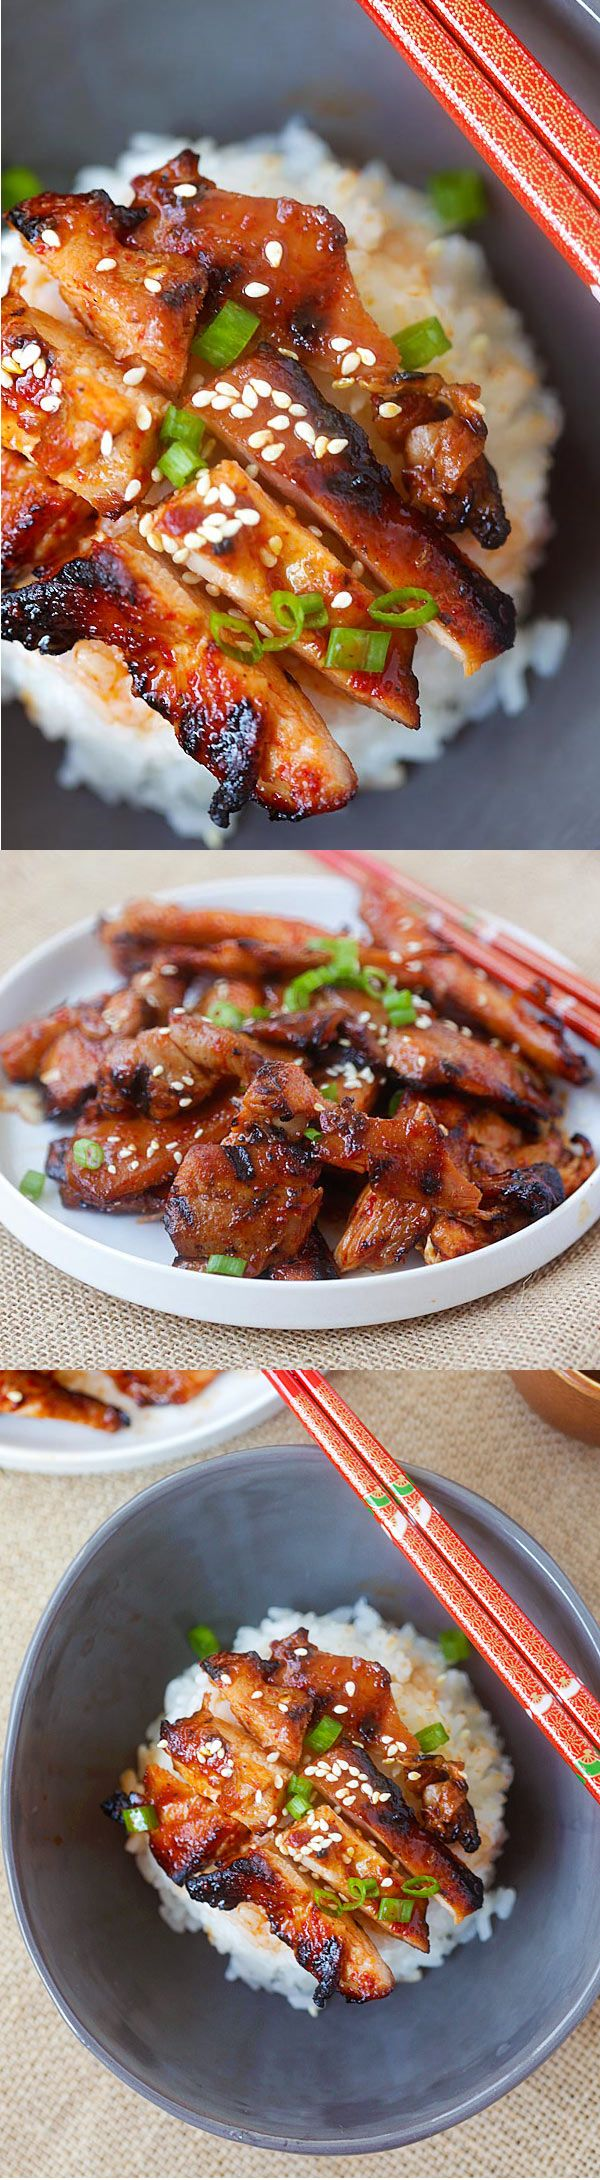 Spicy Korean Chicken by rasalamalaysia: Amazing and super yummy chicken with spicy Korean marinade. So easy to make, cheaper, and better than takeout. #Chicken #Spicy #Korean